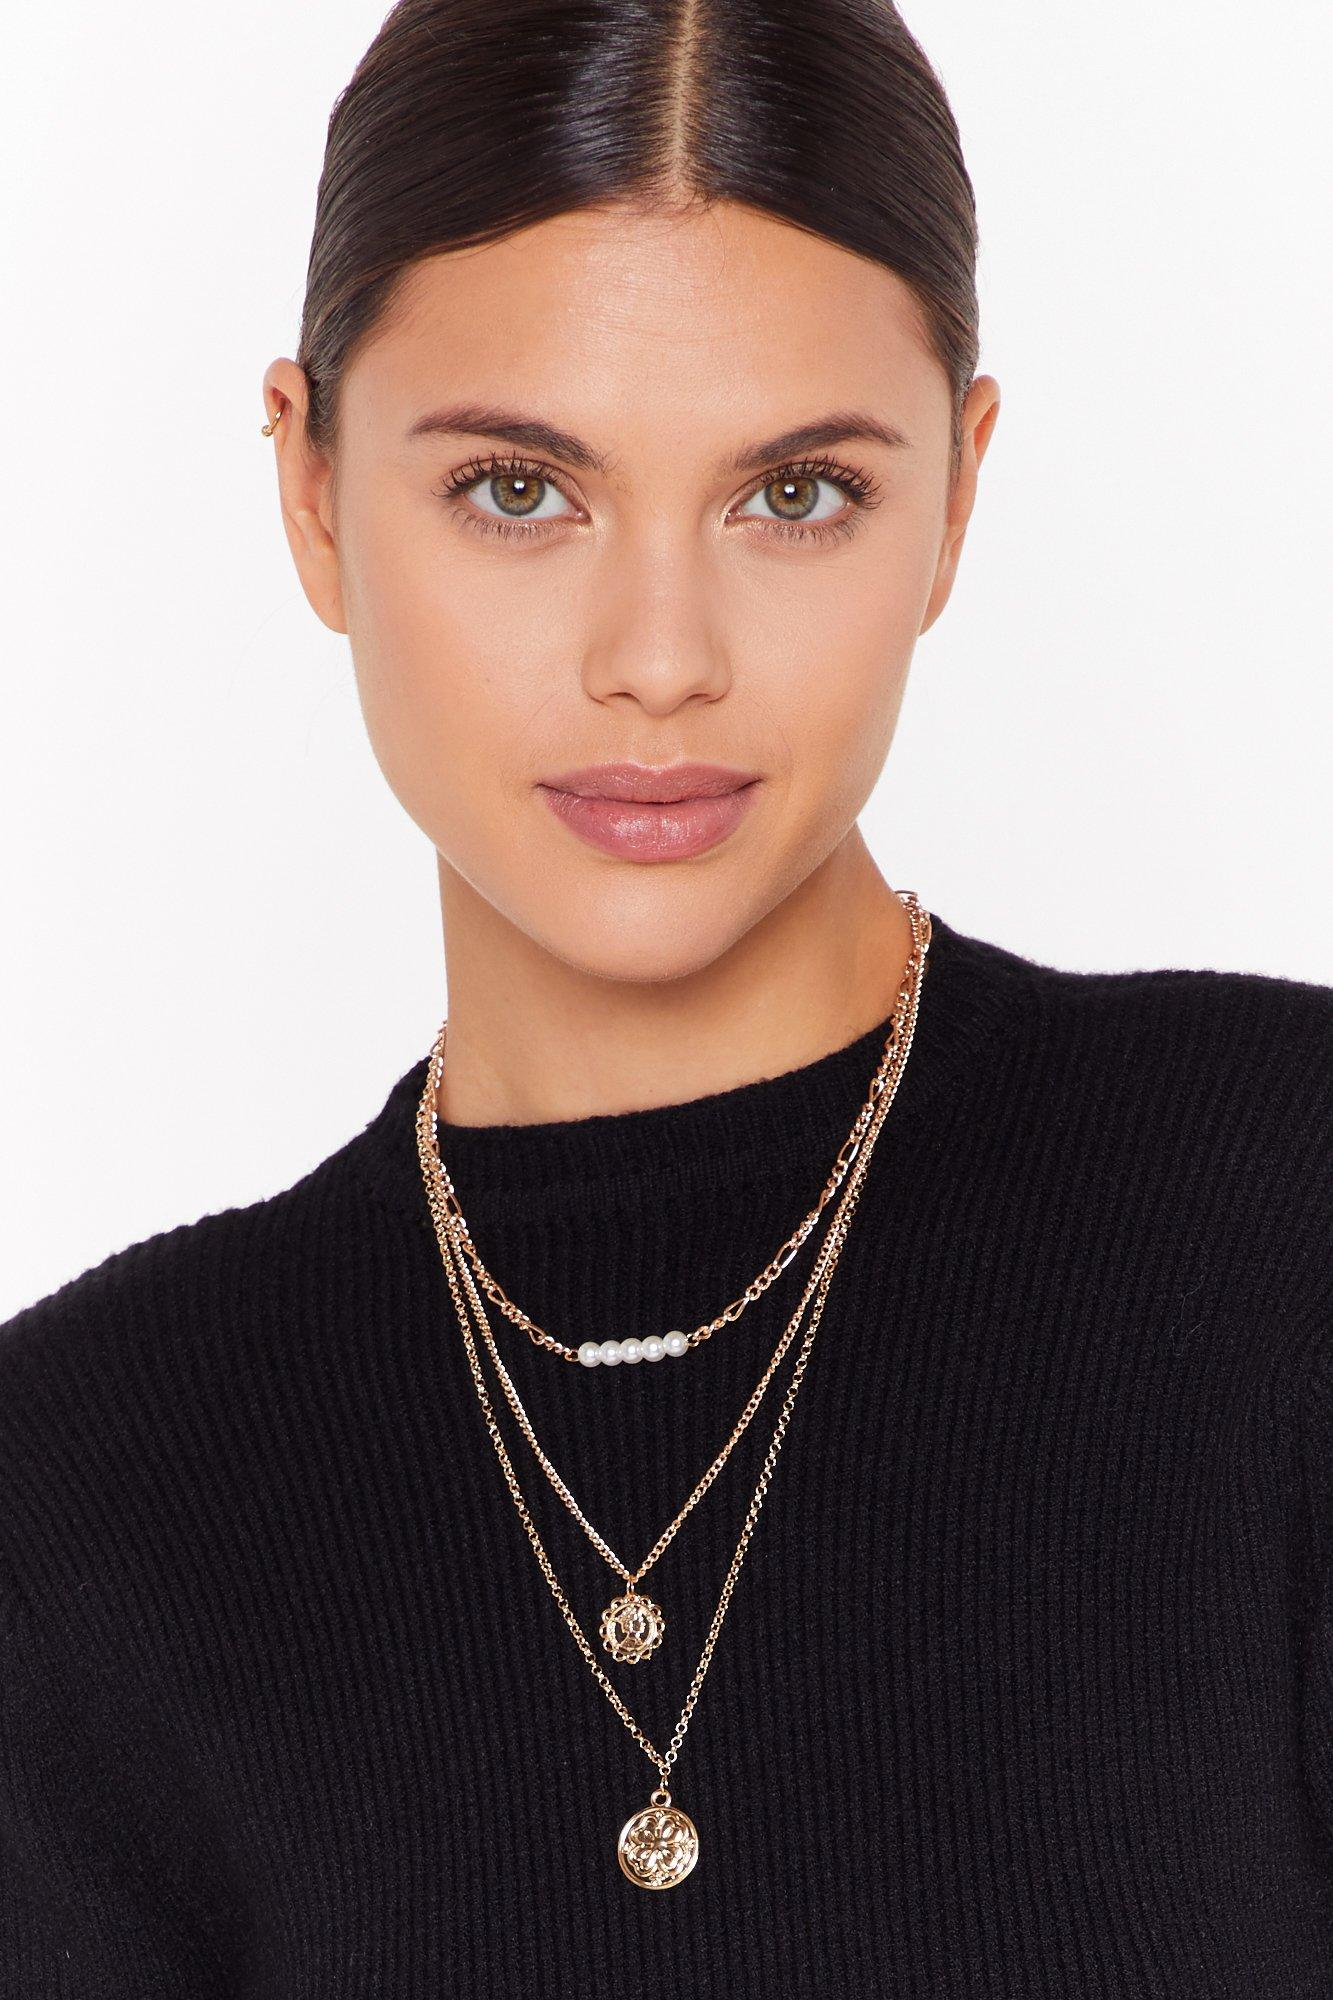 Image of Triple layer pearl pendant necklaces